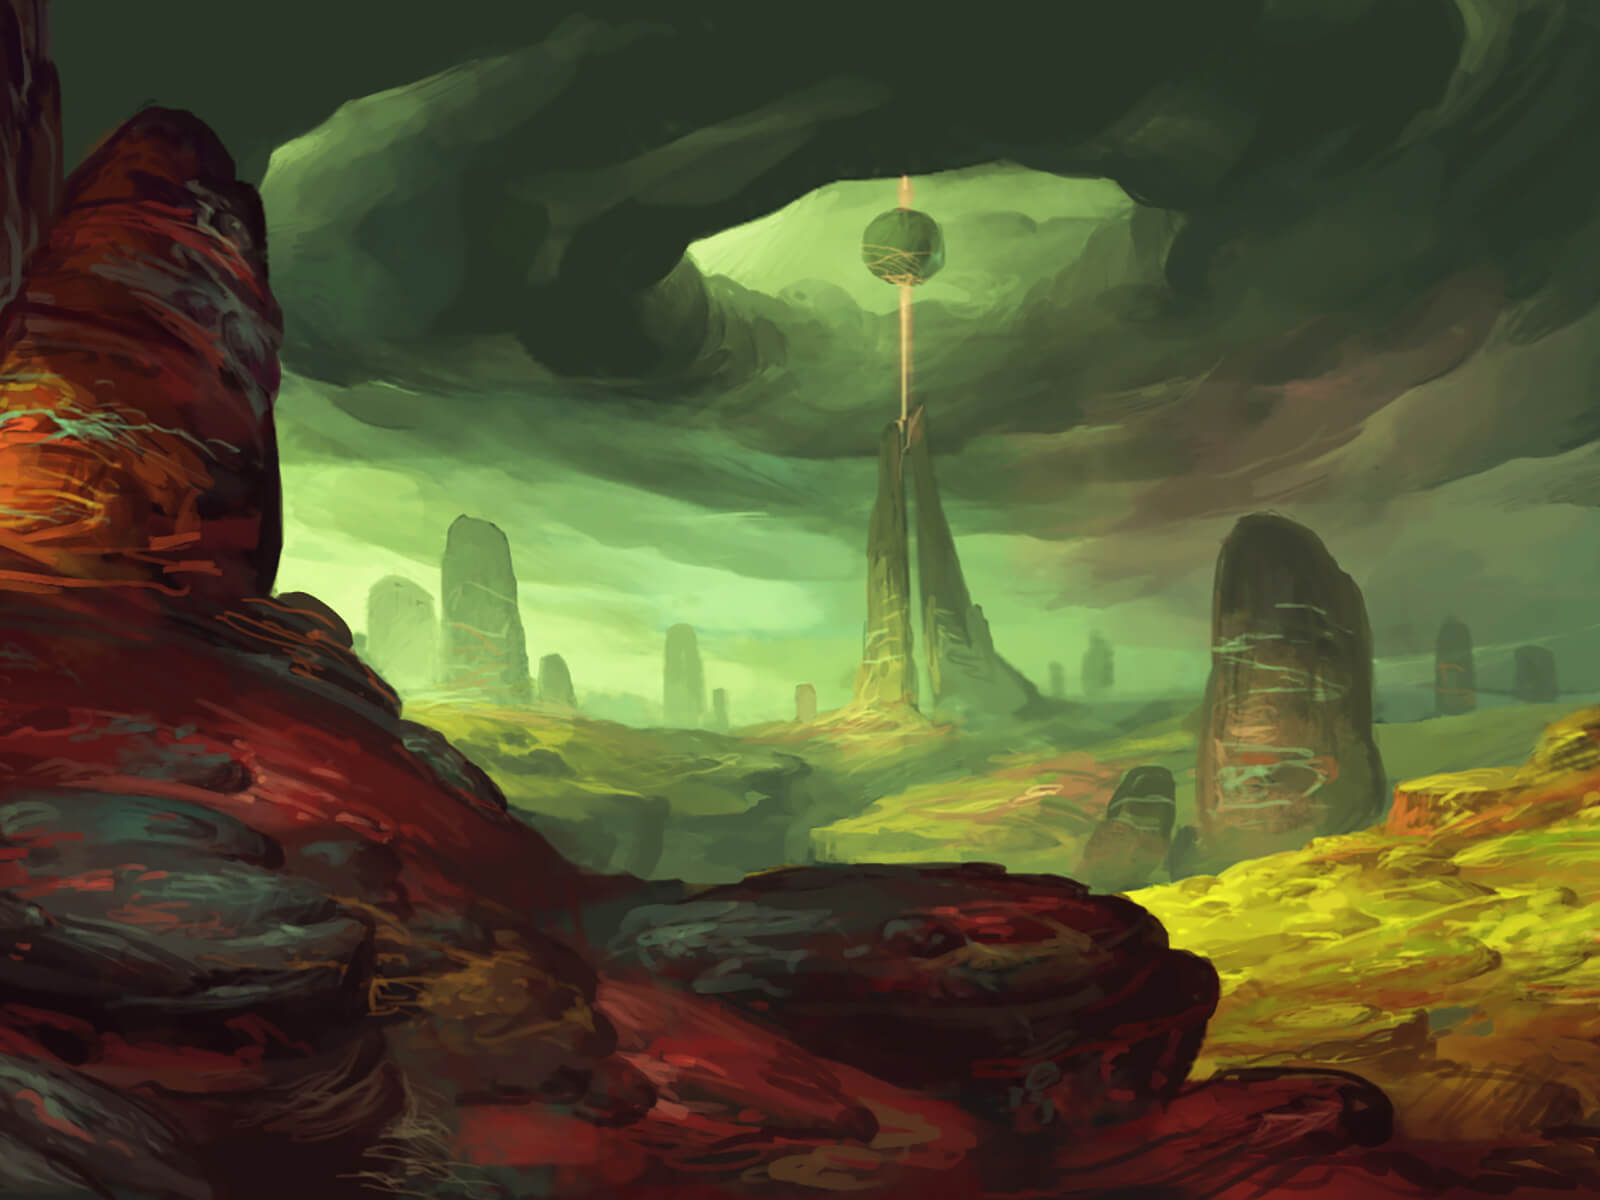 A rocky, alien environment with colorful outcroppings. A sphere floats above one such pinnacle surrounded by storm clouds.